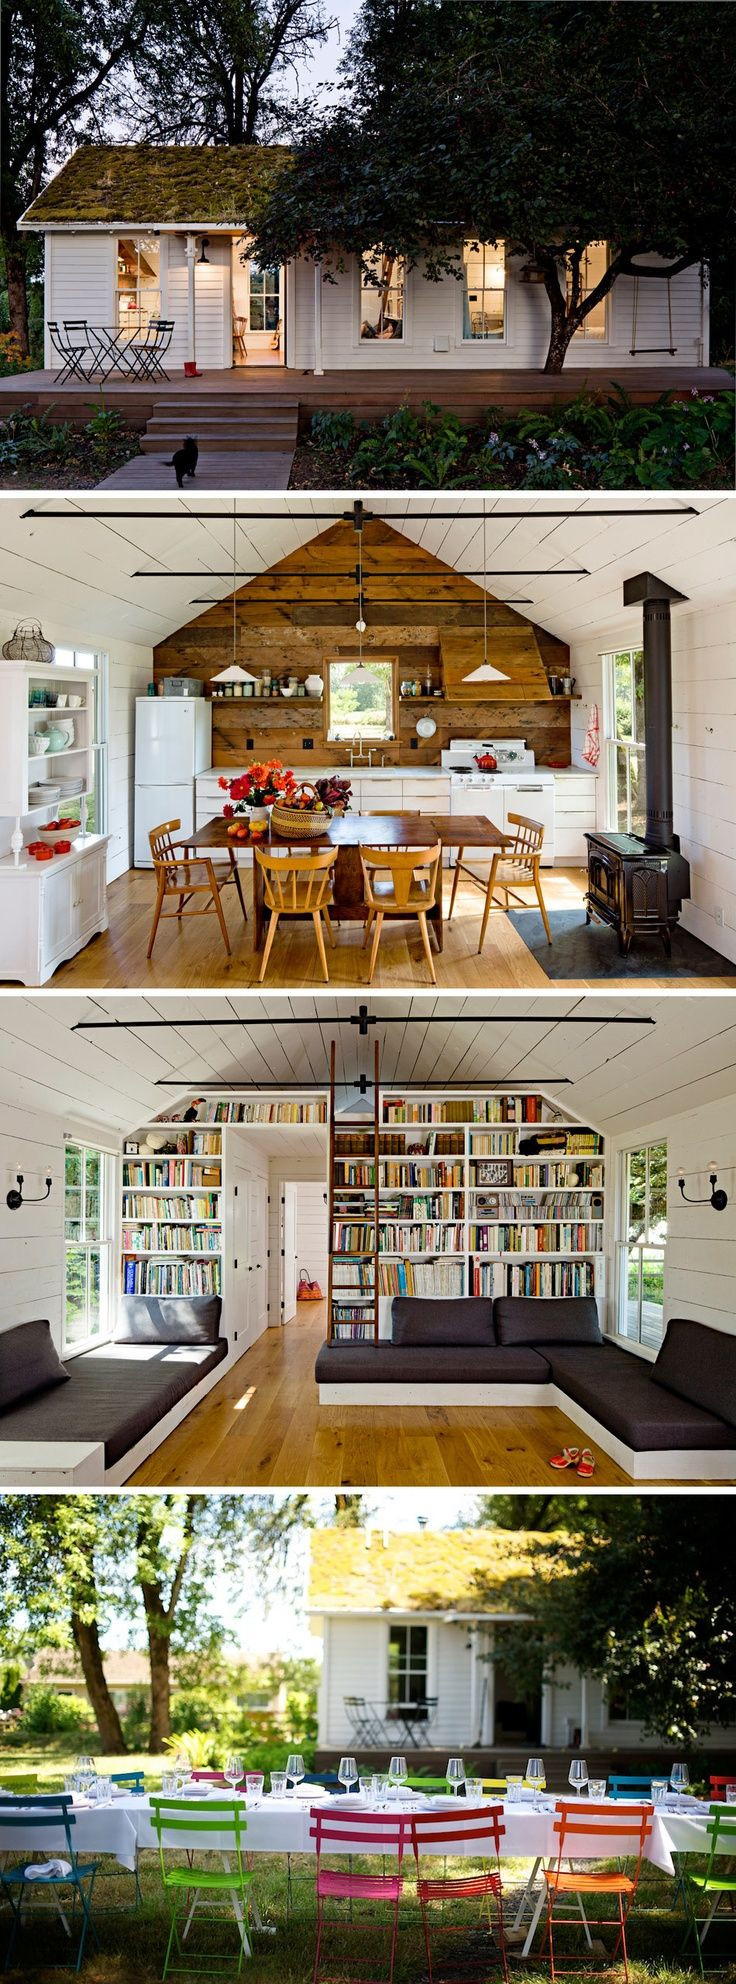 Tiny house, lofted bedroom – really like the shelving in this. | Poked.co